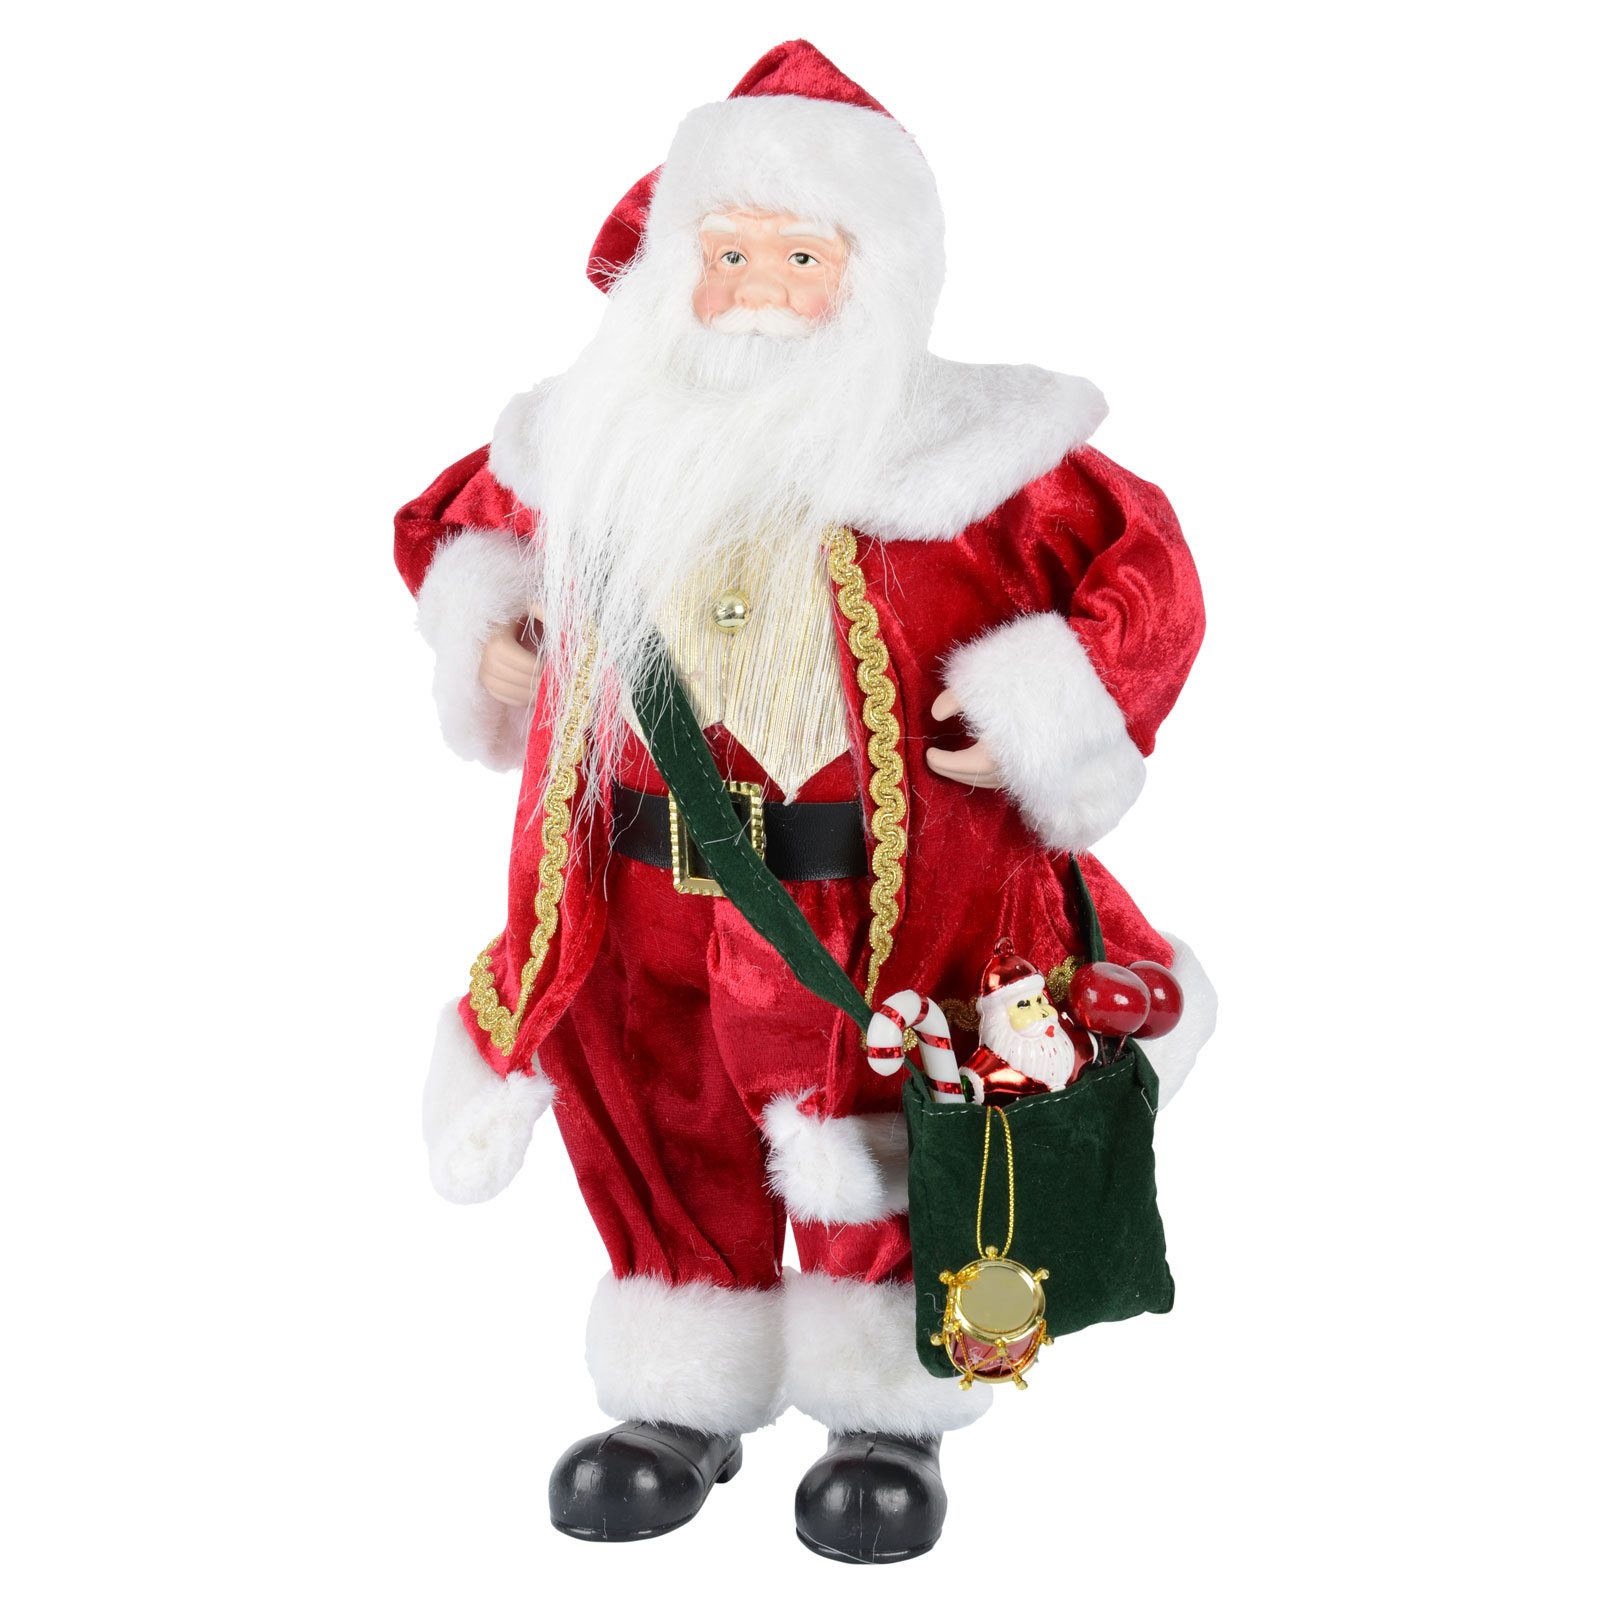 "Santa Claus Decorations Uk: 16"" Red Standing Santa Claus Christmas Decoration"